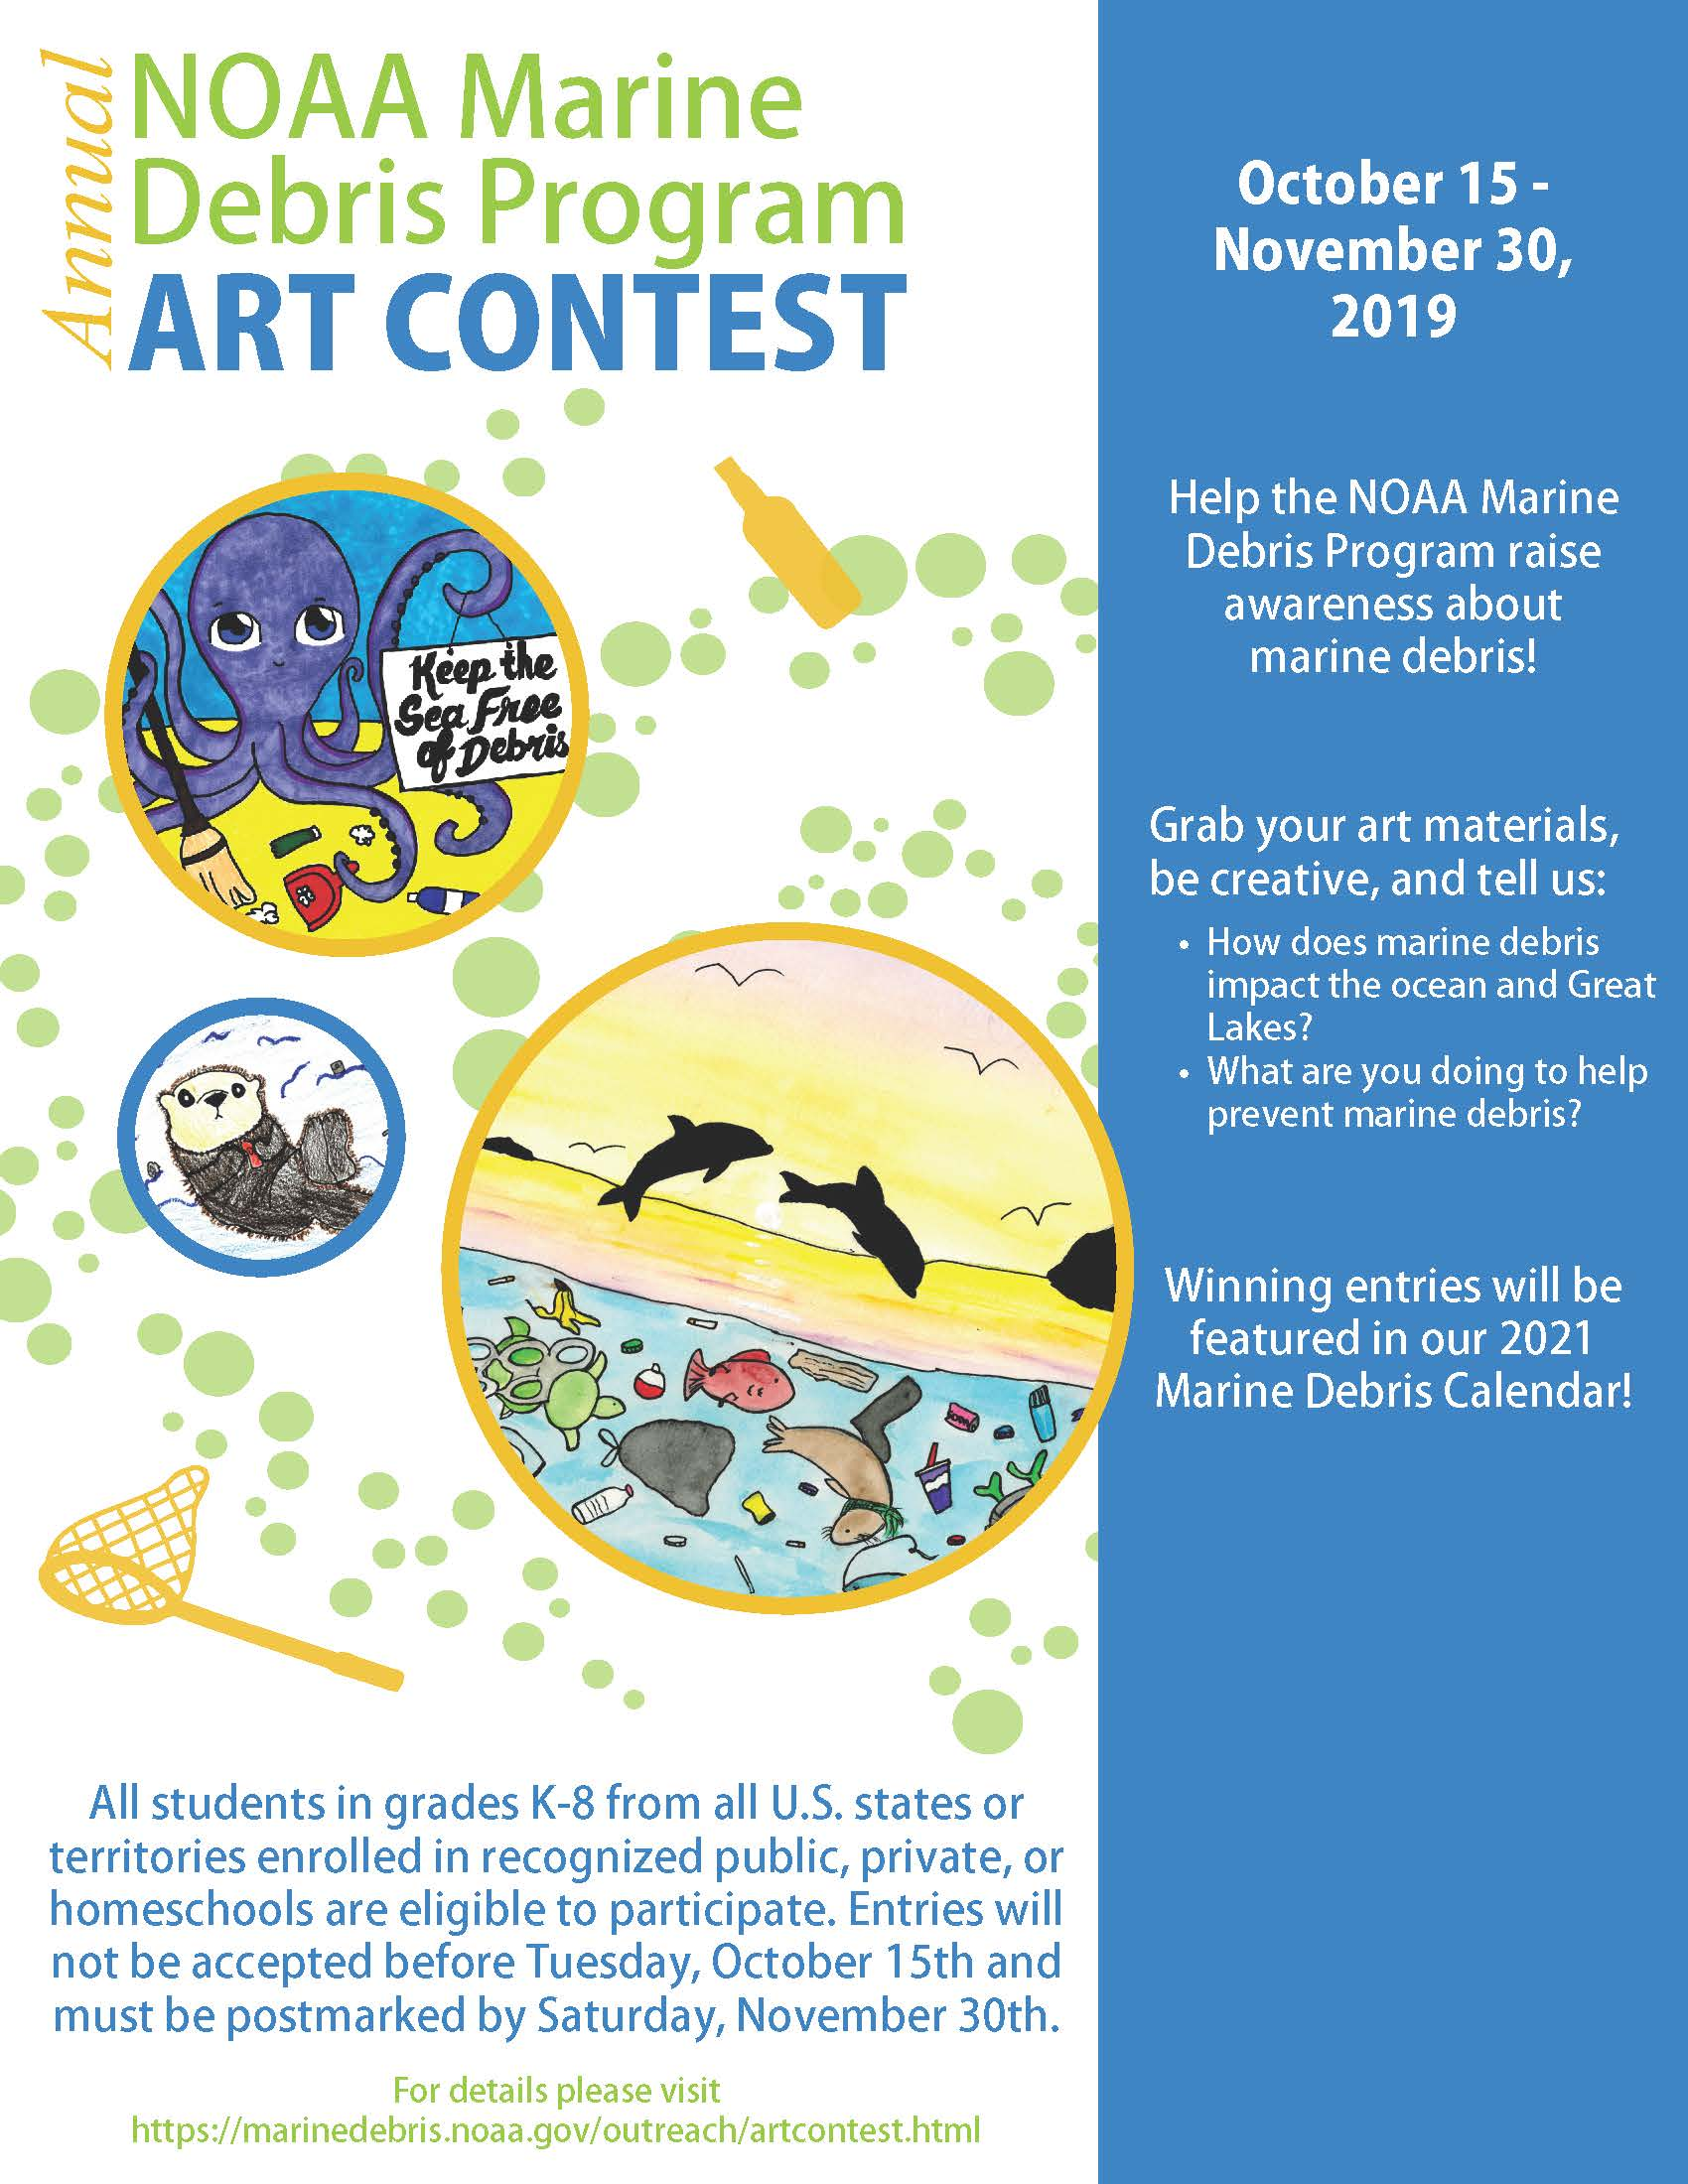 2020 NOAA Marine Debris Art Contest Flyer